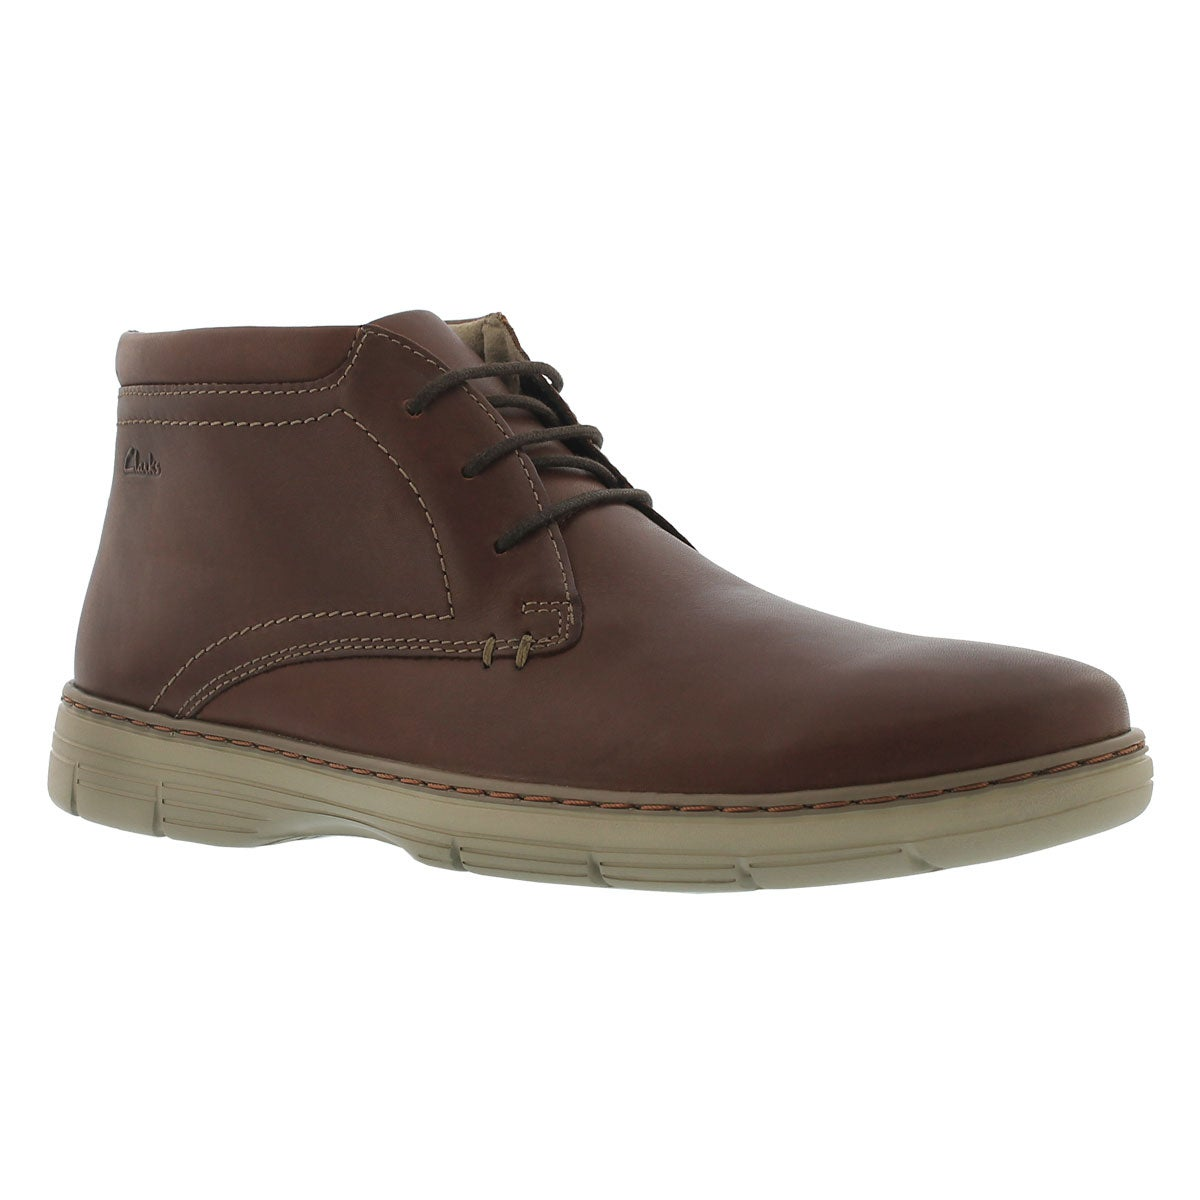 Mns Watts Mid brown chukka boot